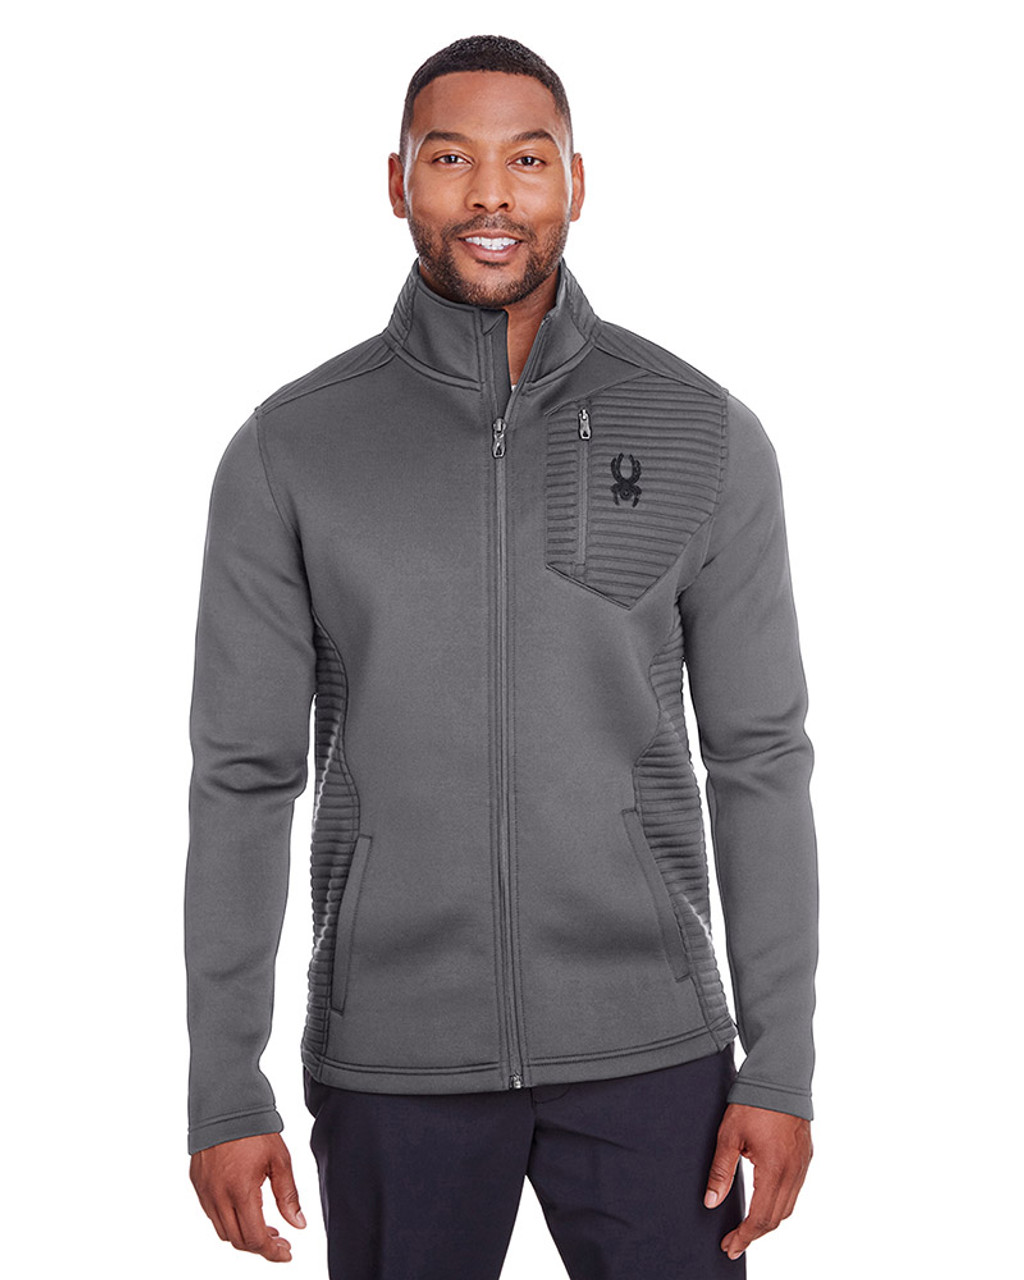 Polar - S16539 Spyder Men's Venom Full-Zip Jacket | Blankclothing.ca